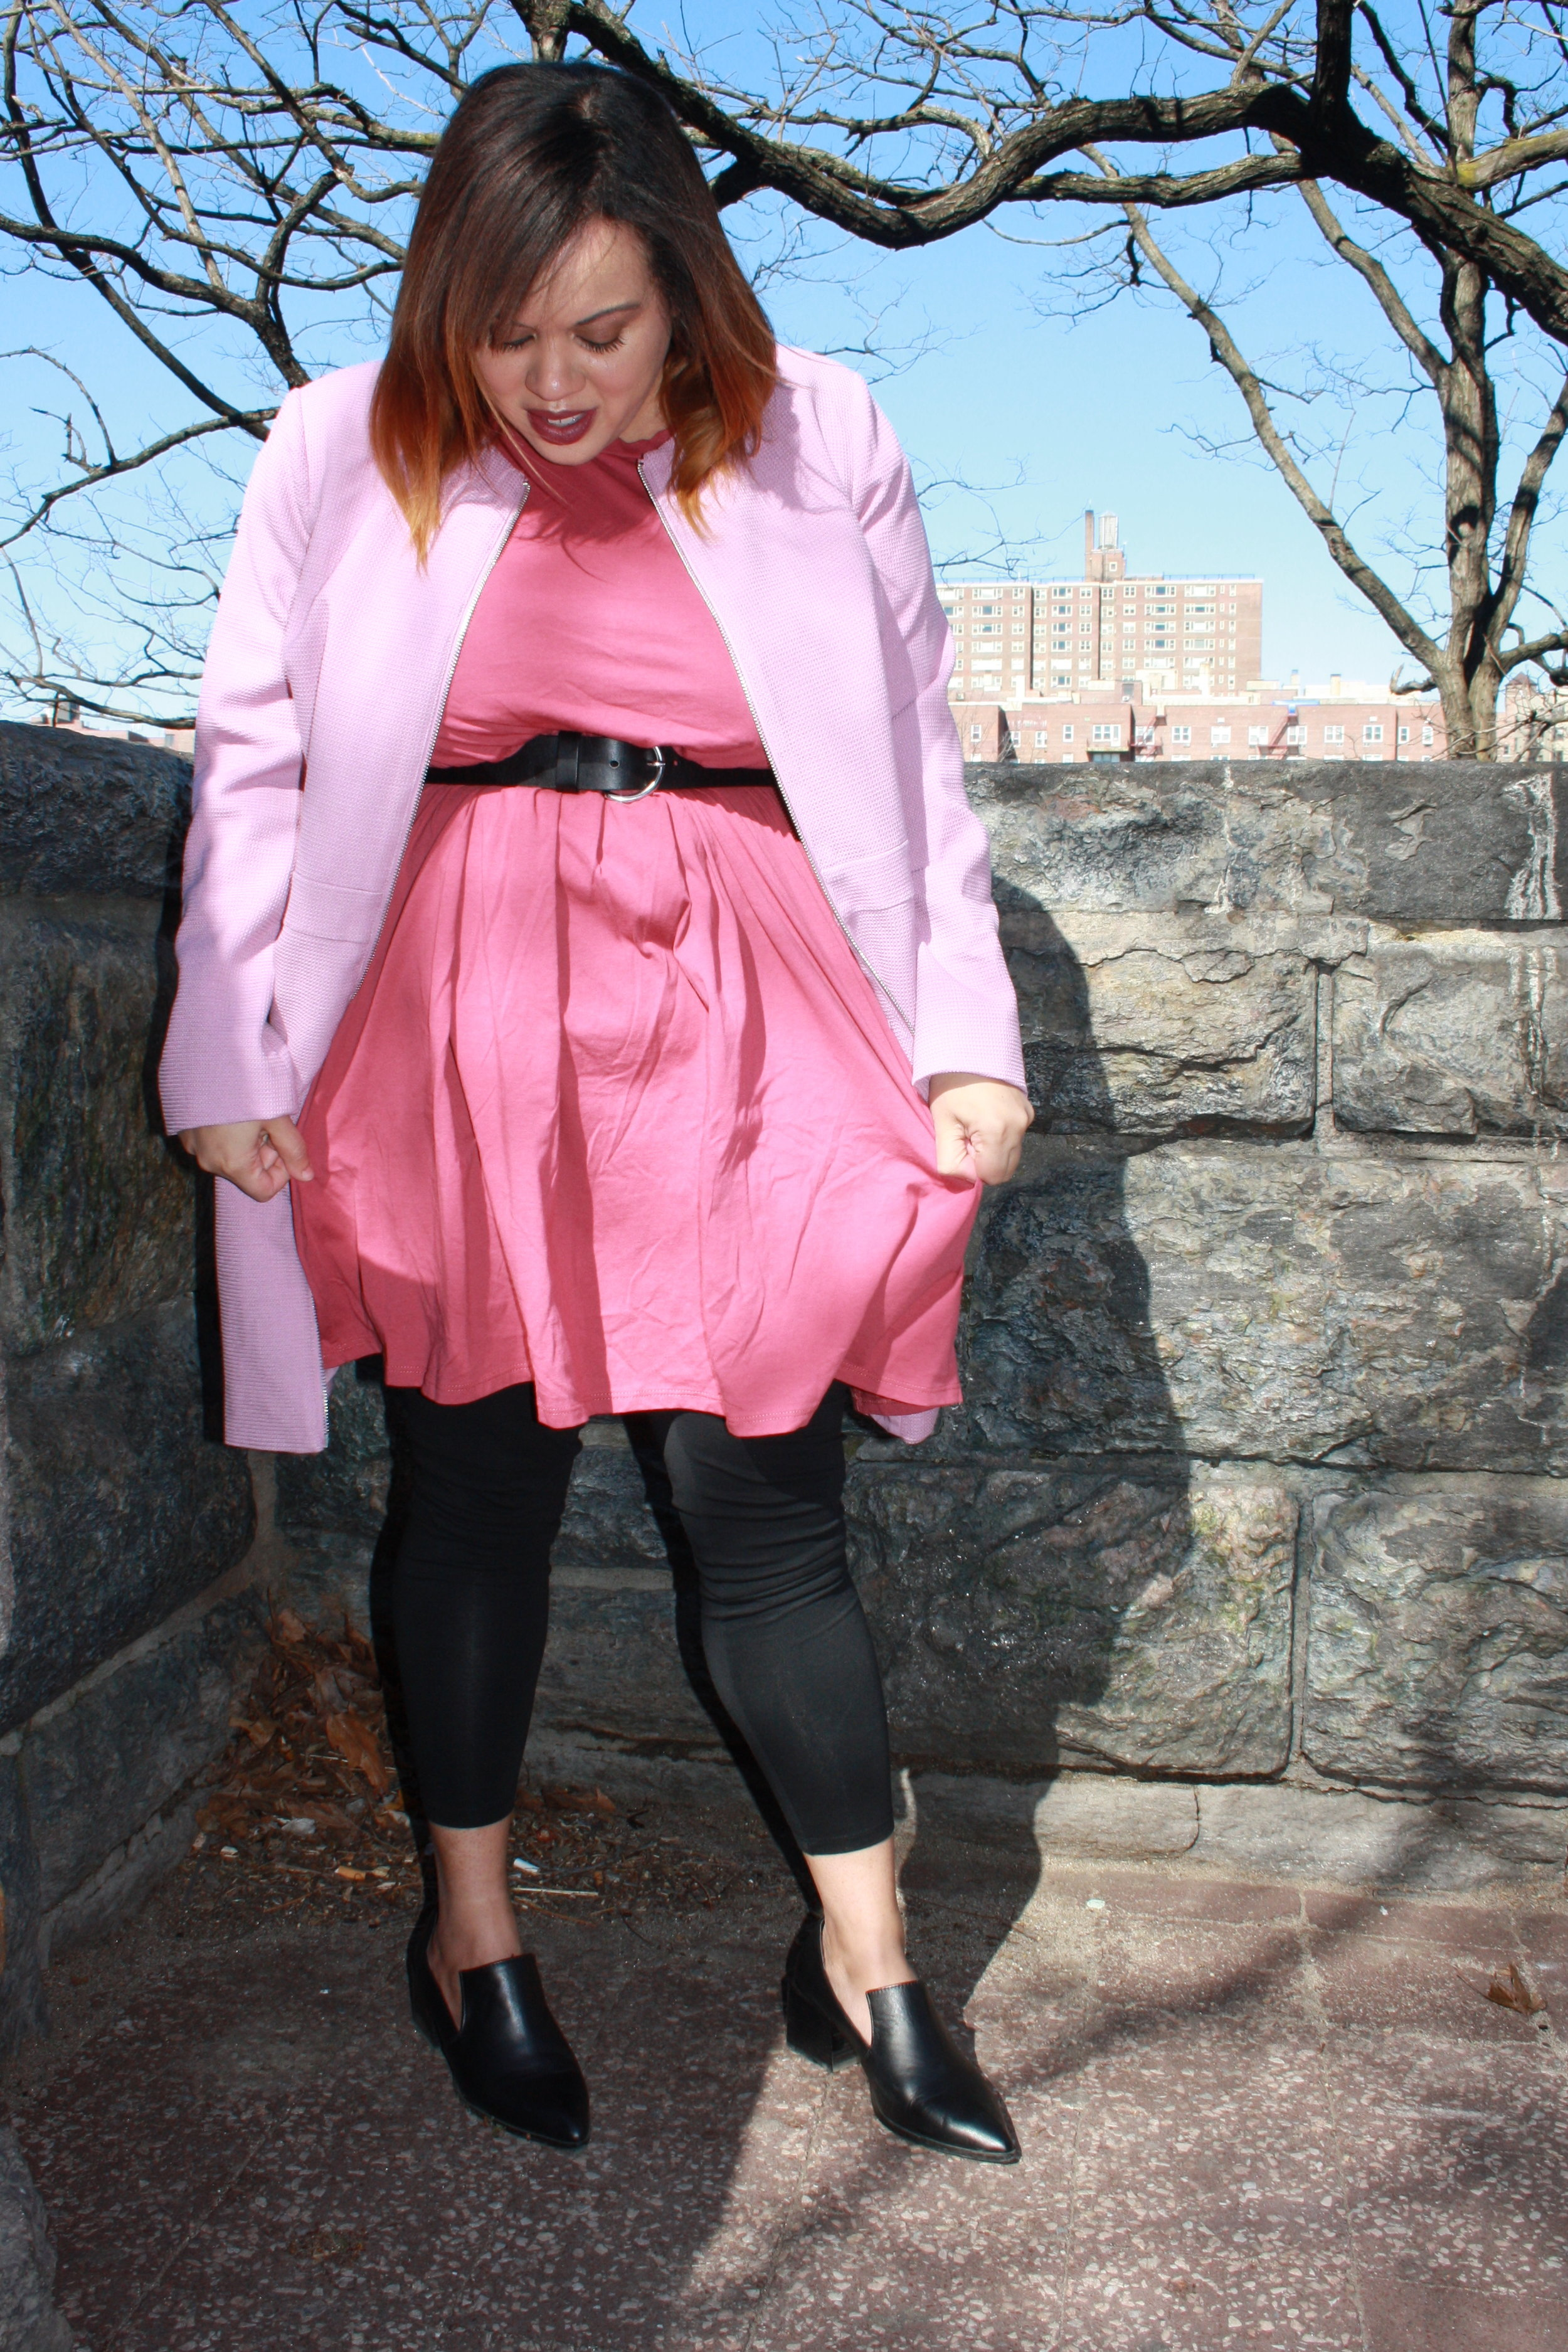 Always use pops of color to highlight your style. I rarely wear pink but when I do it's because I want to command a room and grab attention. Jacket:  ELLOS